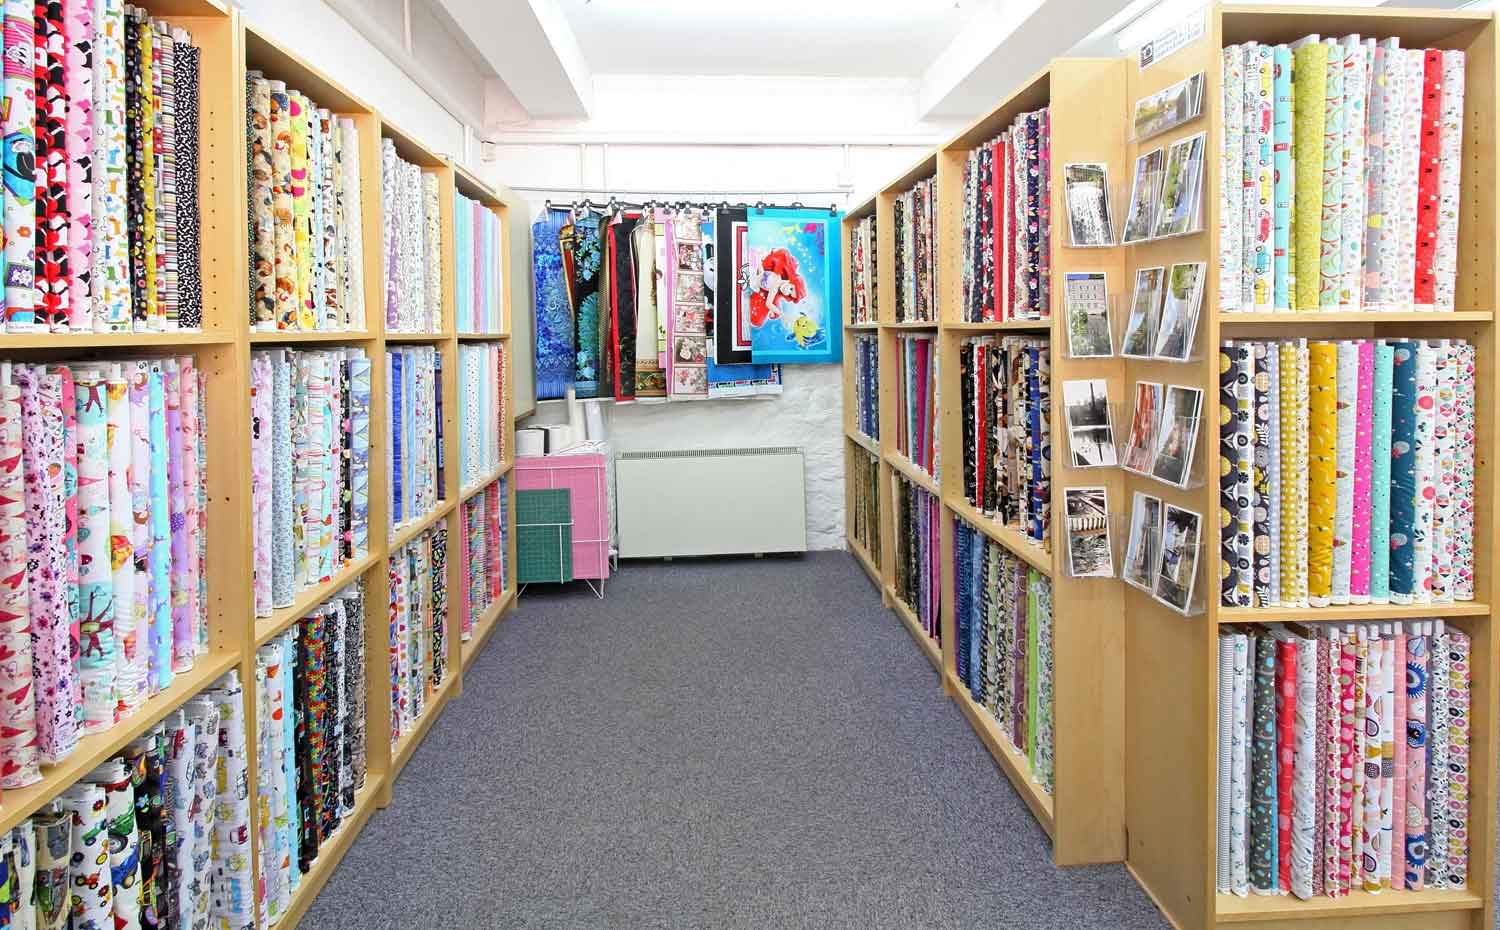 Interior view of the fabrics and panels at Quiltessential in Cromford Derbyshire